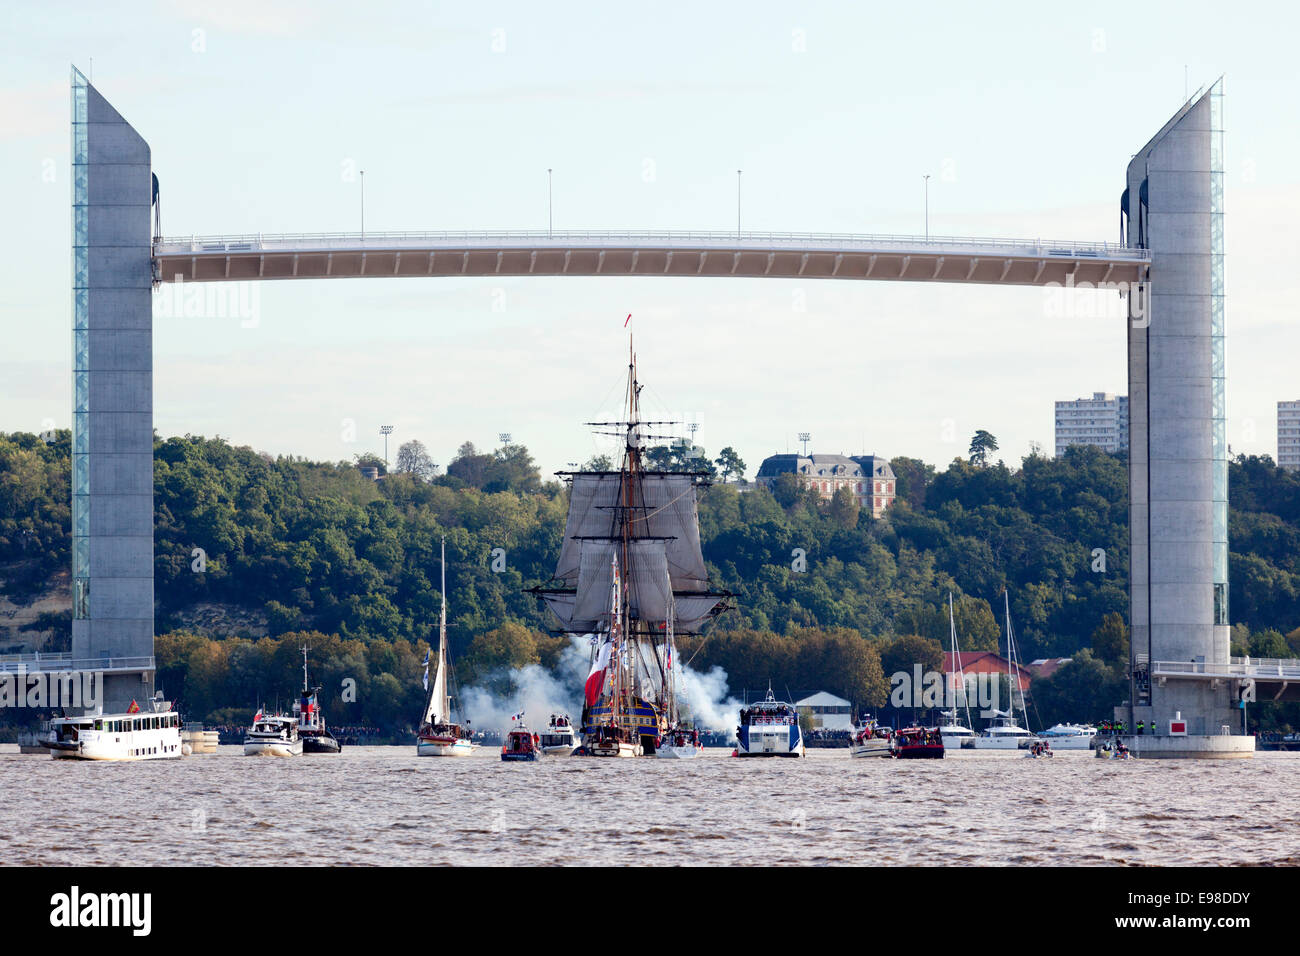 The replica of the frigate 'l'Hermione' (under the Chaban Delmas vertical-lift bridge) firing a salute - Stock Image